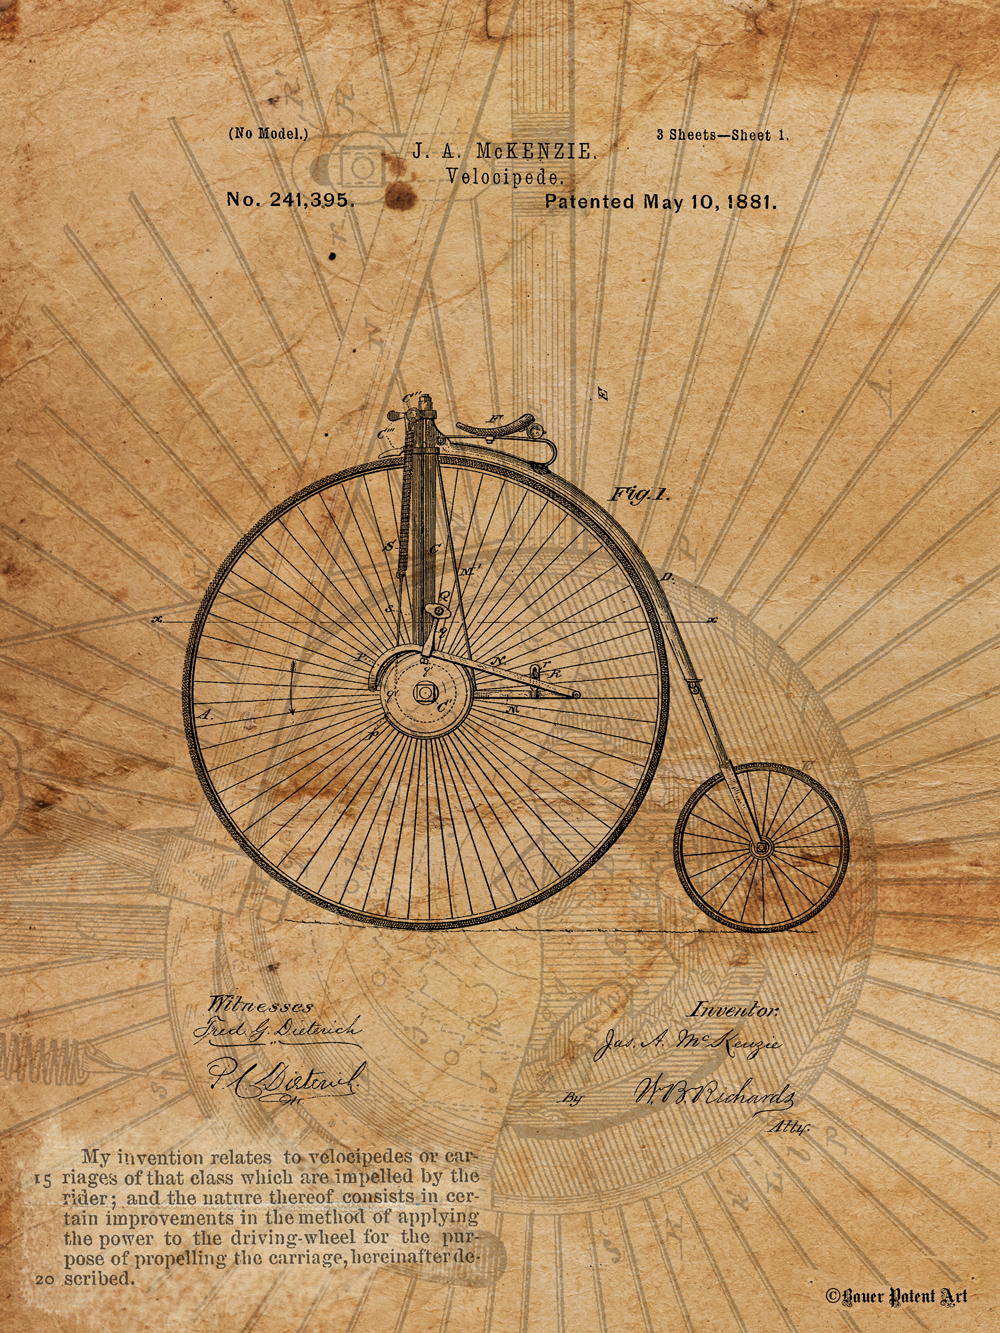 vintage patent drawings artwork